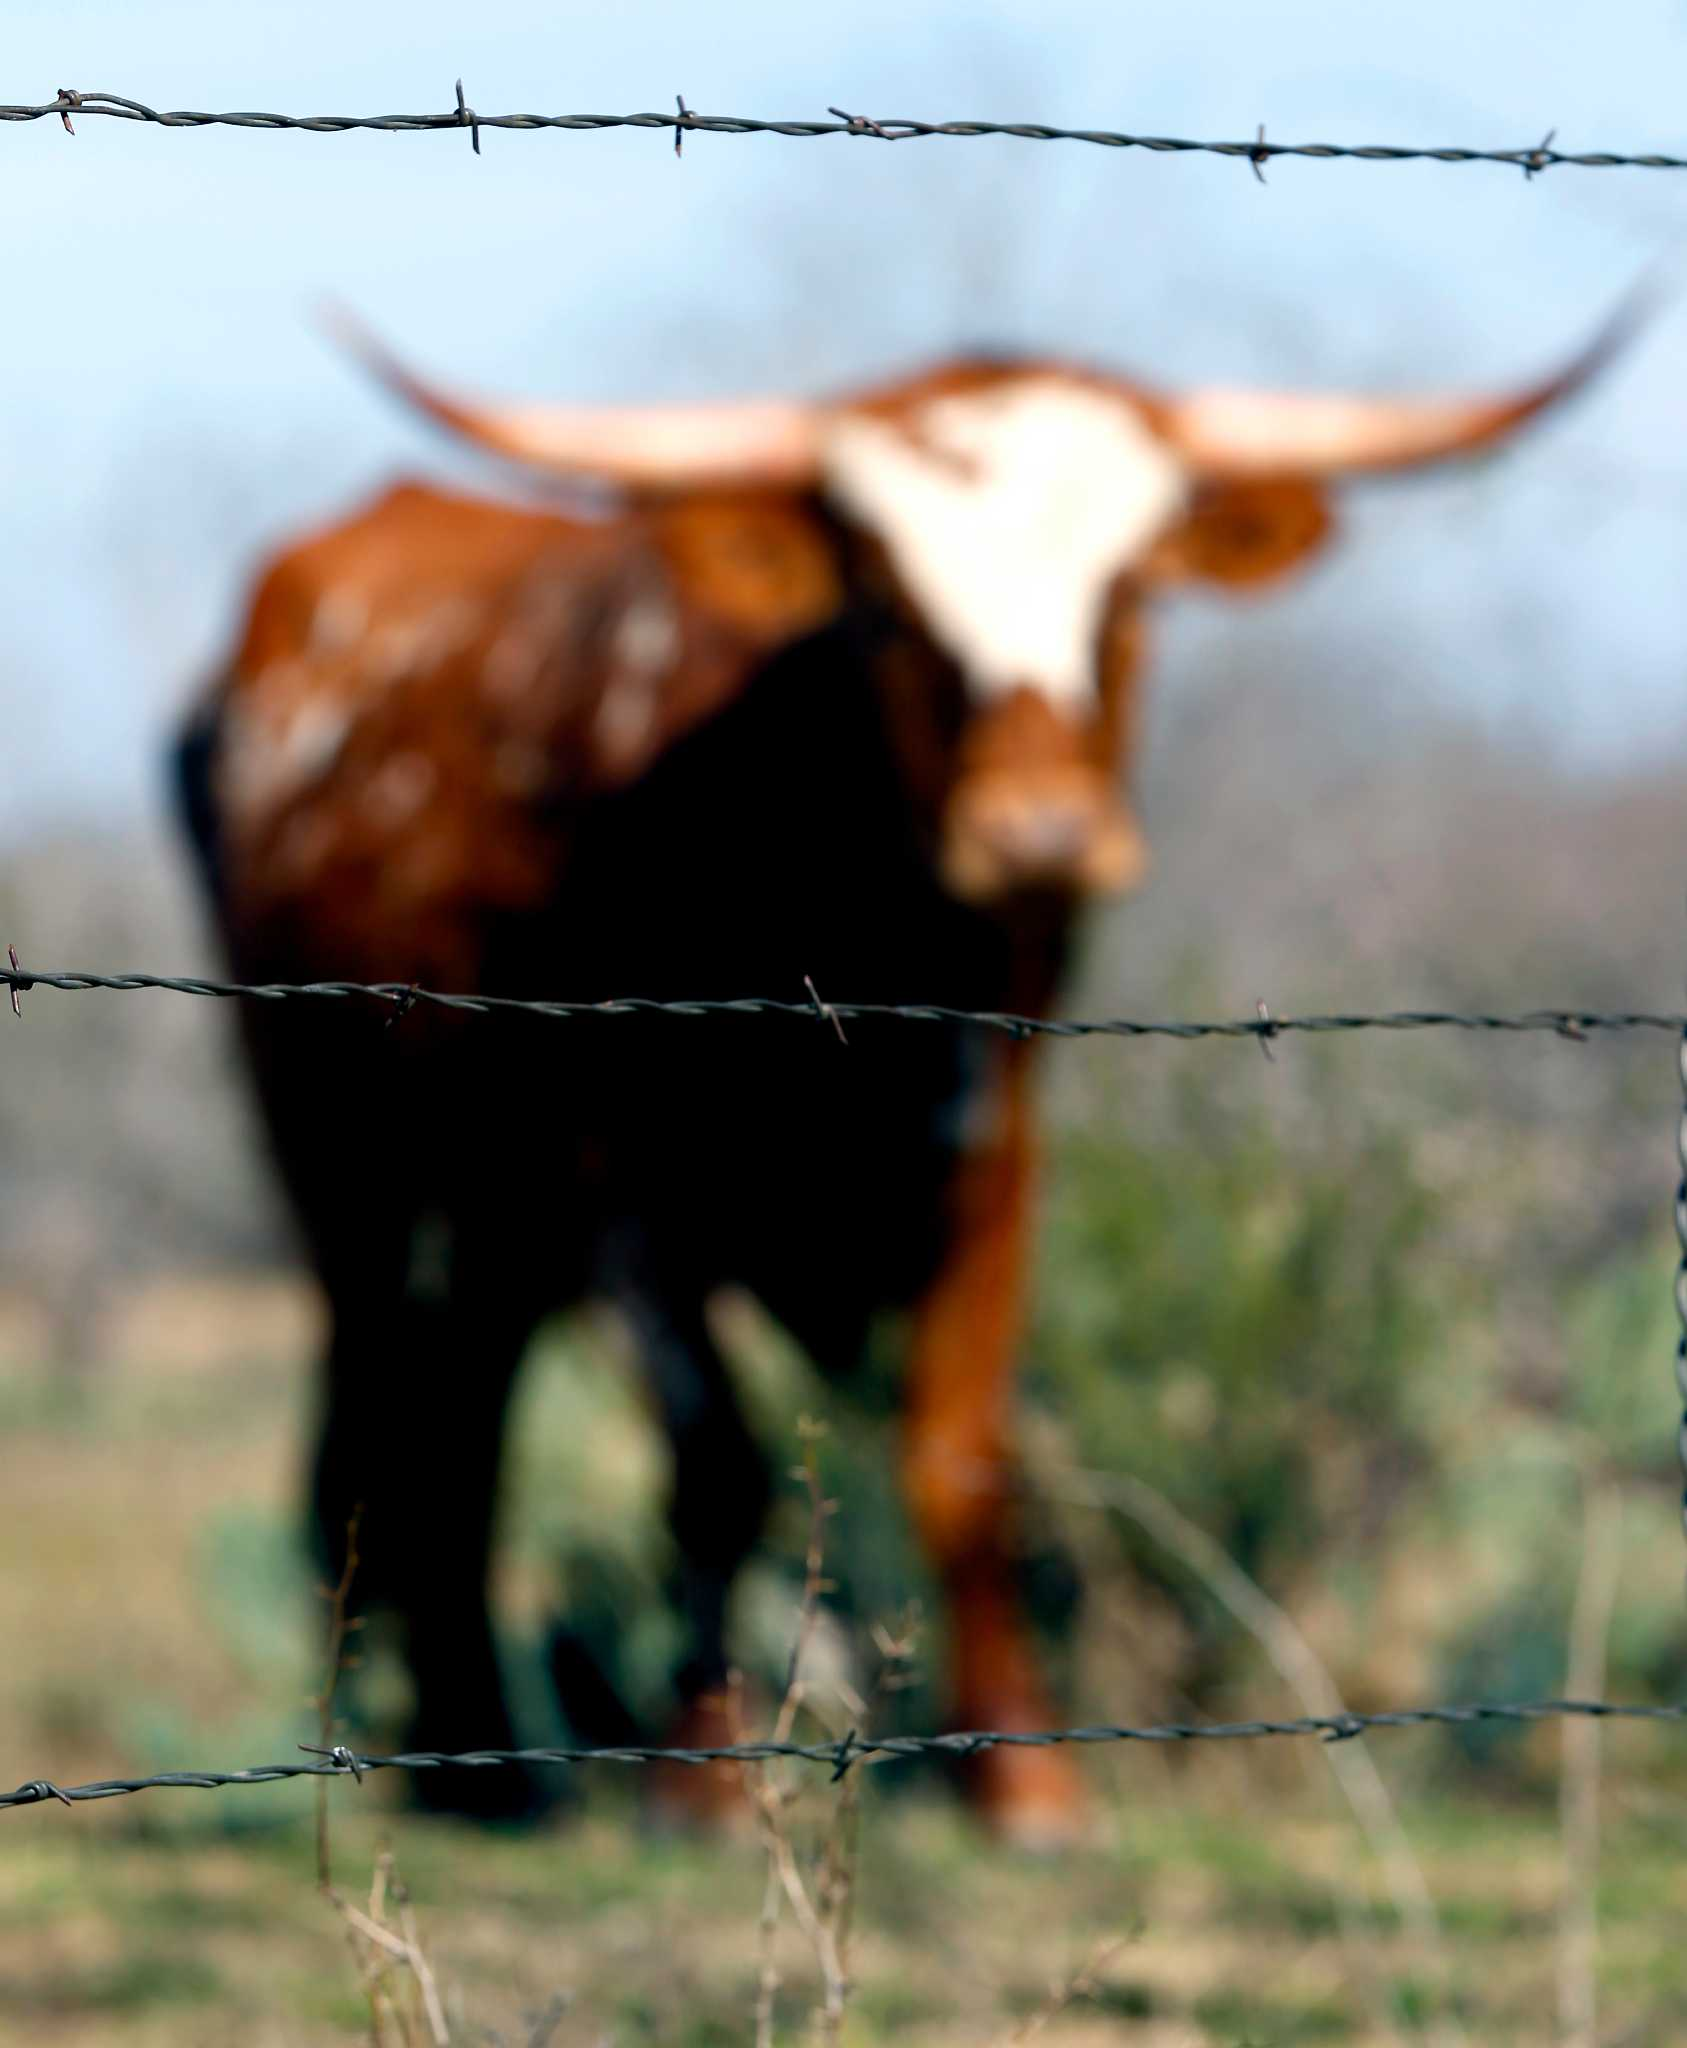 Barbed wire fence cattle Razor Wire Barbed Wire Presentation Changes American West San Antonio Expressnews Barbed Wire Presentation Changes American West Expressnewscom